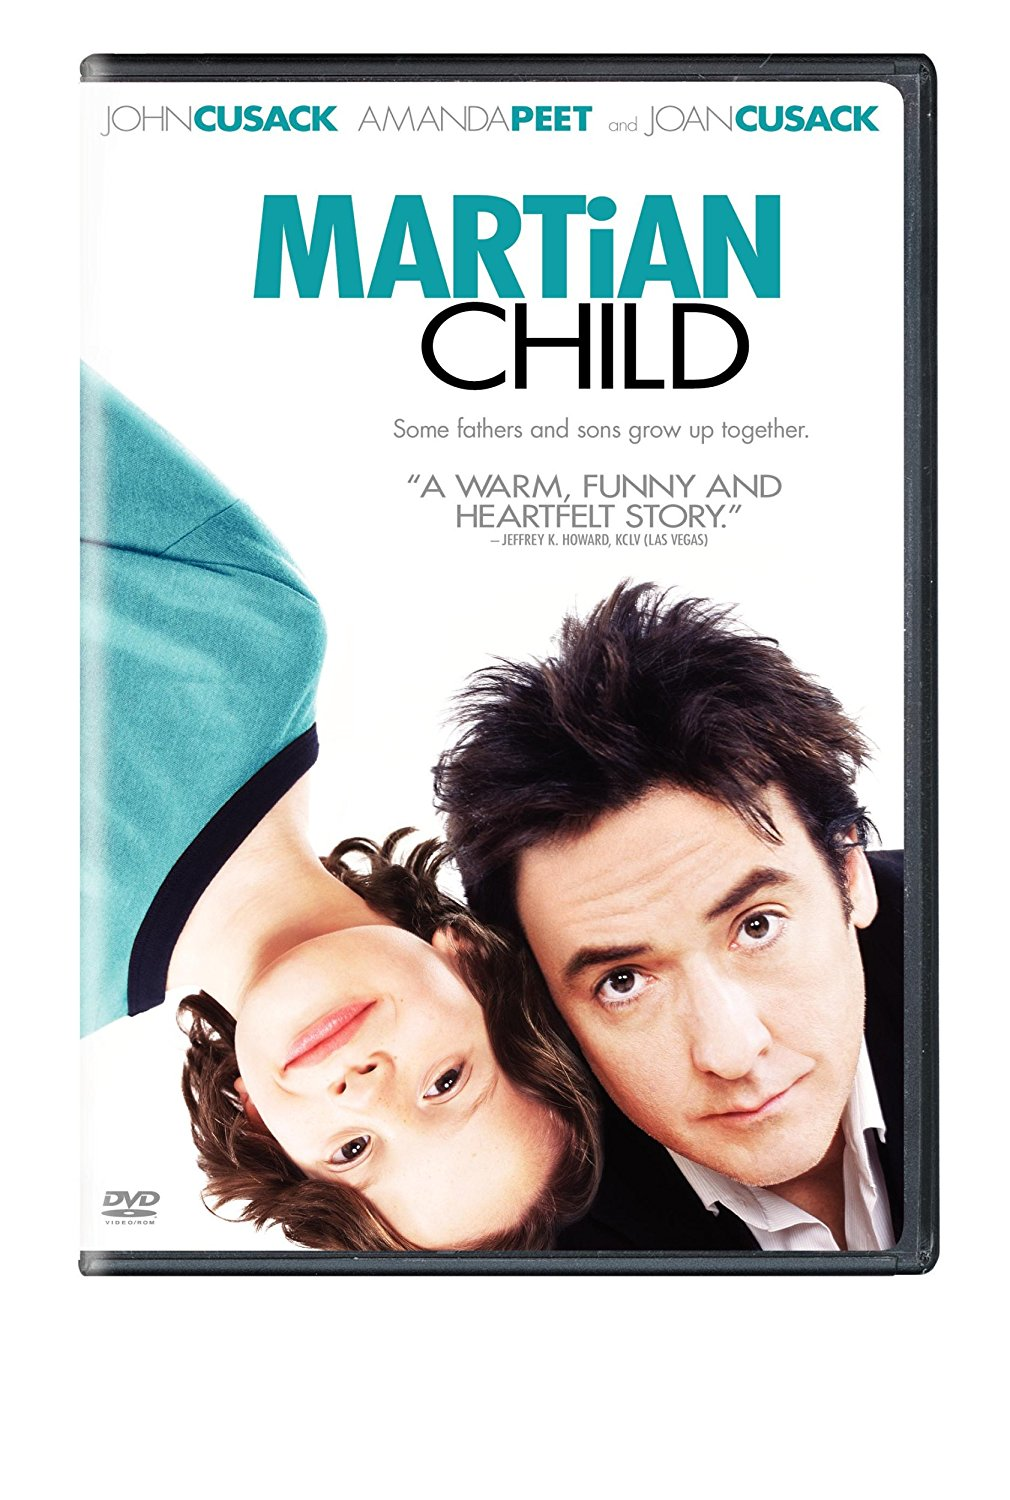 Martian Child, a clean inspiring movie on Netflix